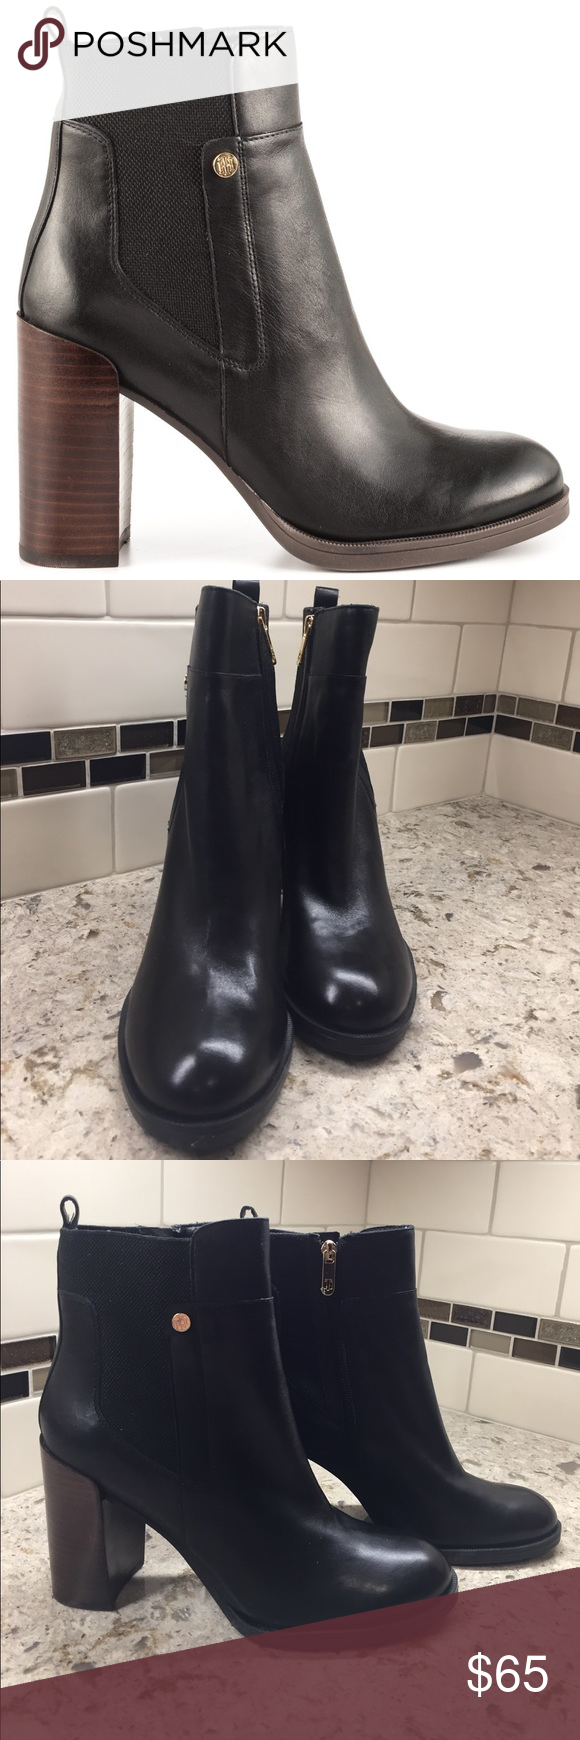 01813195f Tommy Hilfiger Britton booties New in box black leather with 4 inch stacked block  heel ankle